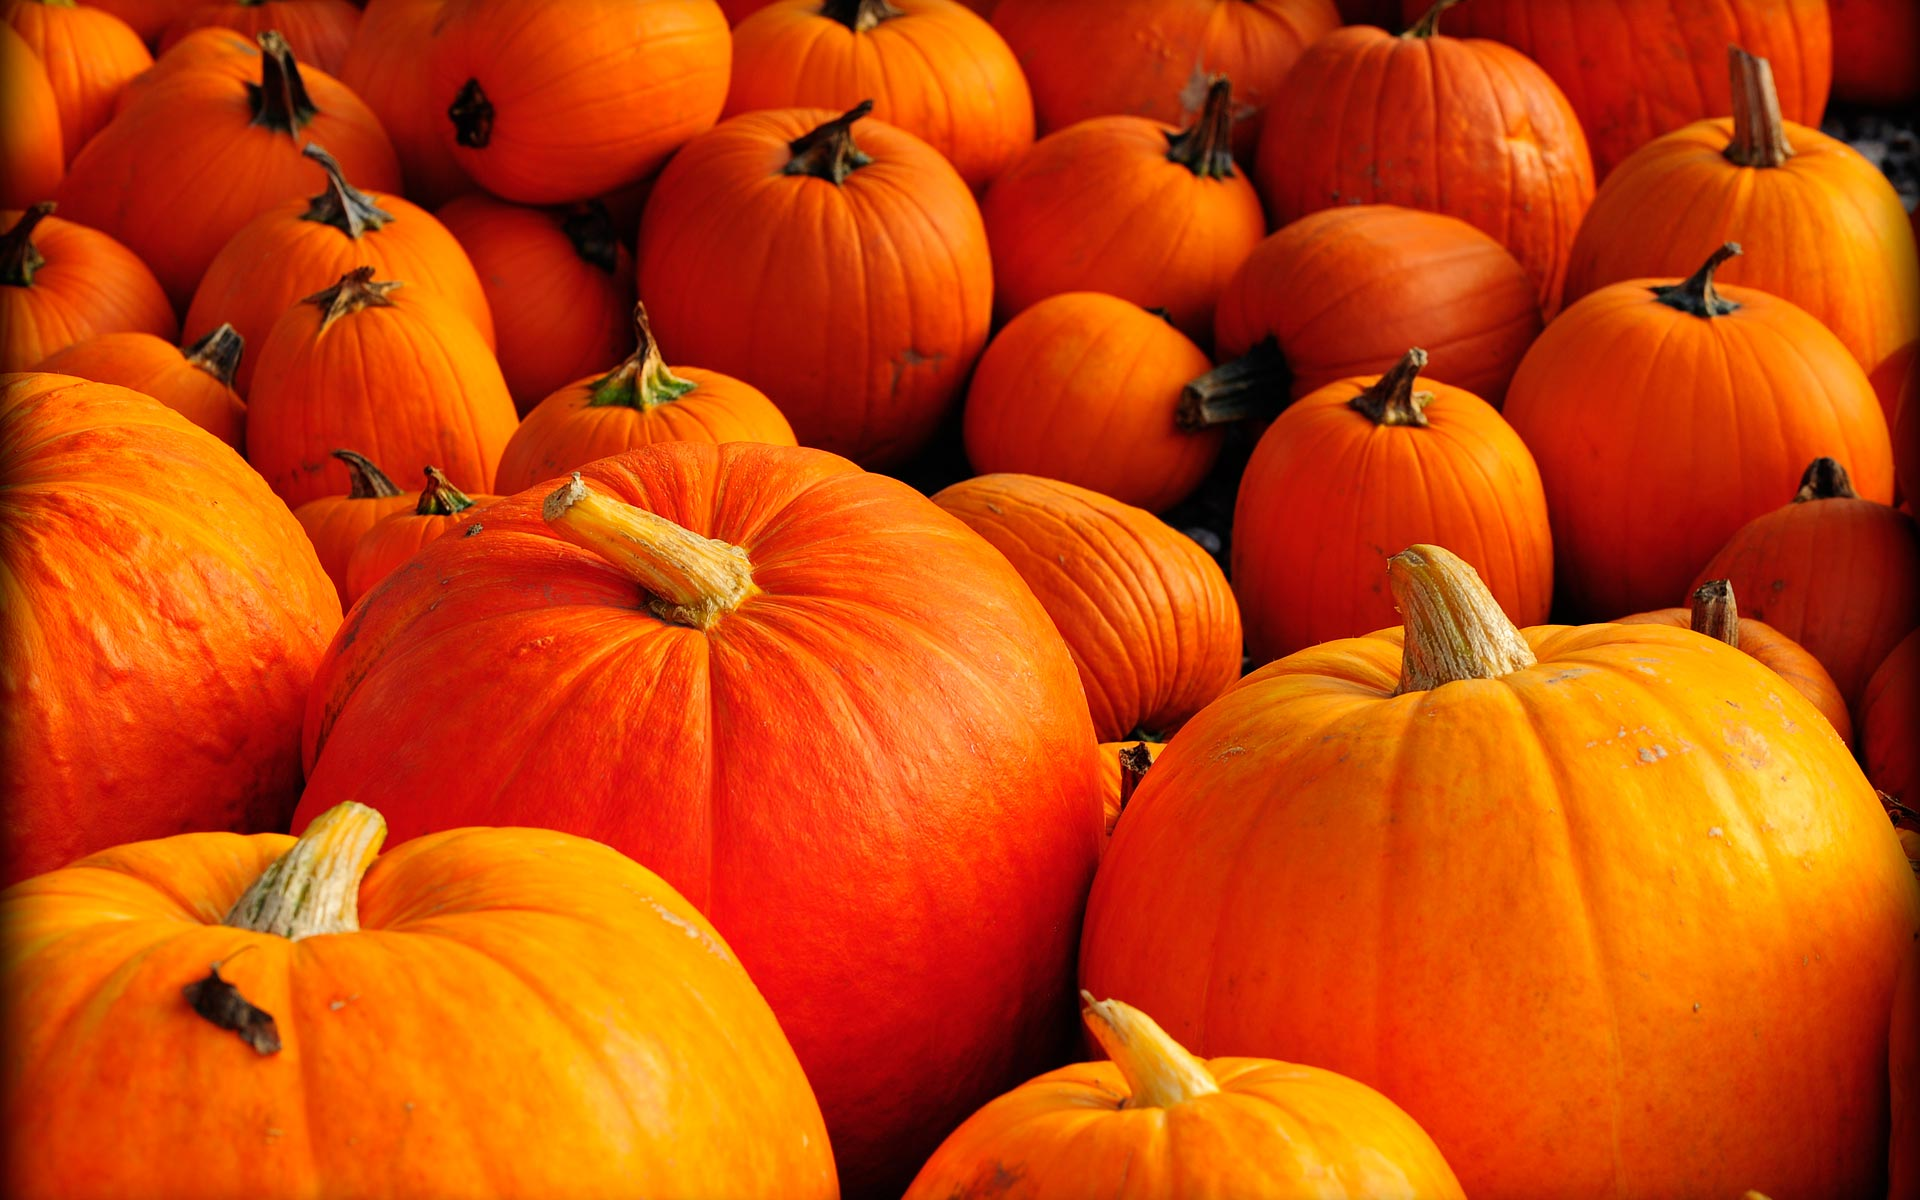 Fall wallpaper backgrounds with pumpkins wallpapersafari - Fall wallpaper pumpkins ...